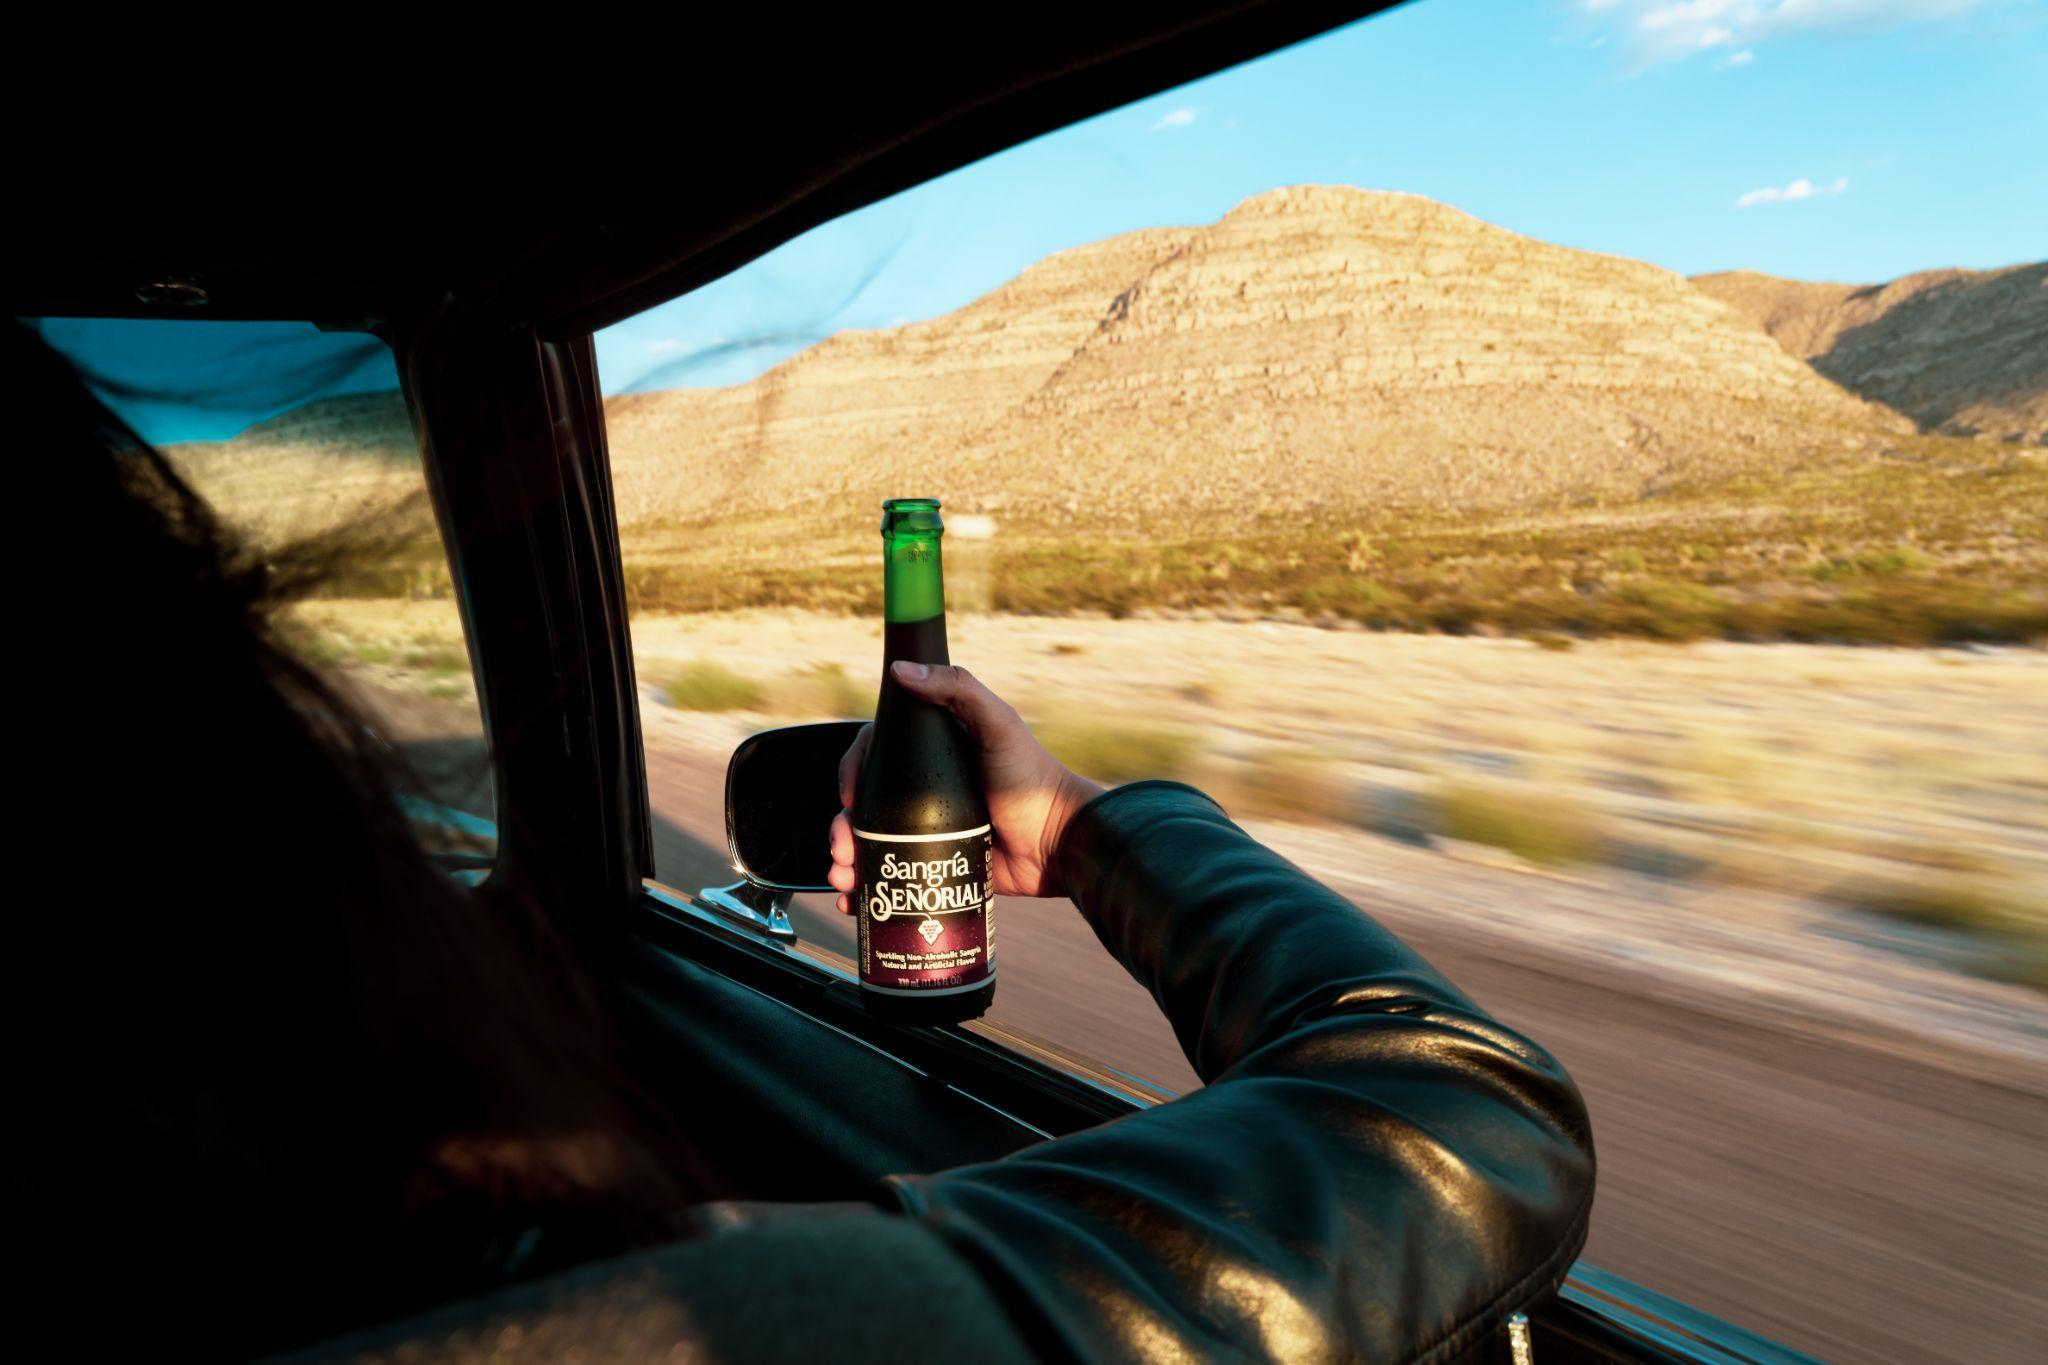 What Happens To First-time DUI Offenders?